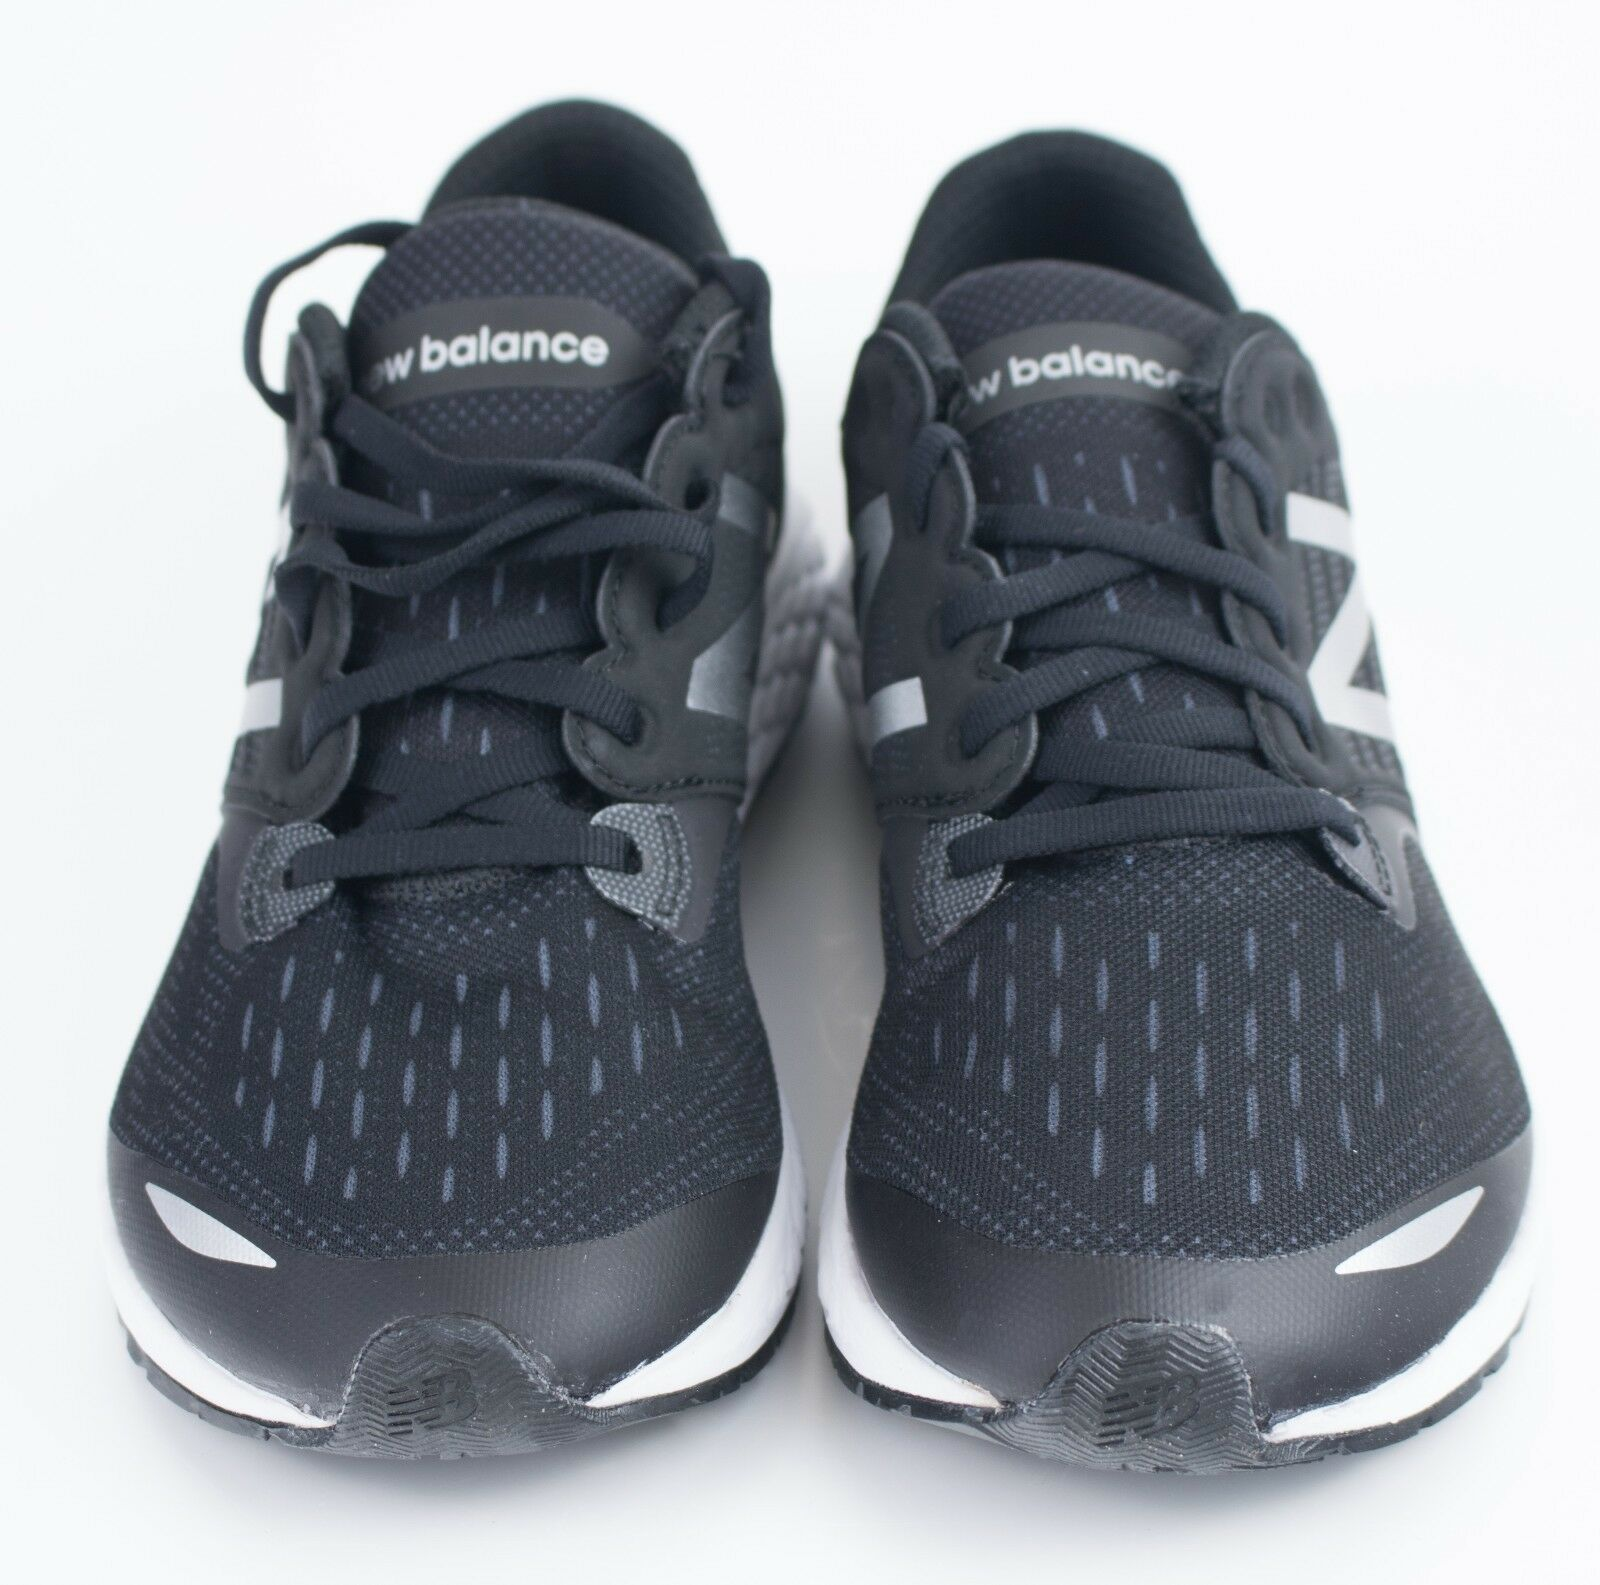 NEW BALANCE Damenschuhe KJZNTTBG RUNNING Sneakers Sz 6 1/2 #GB1